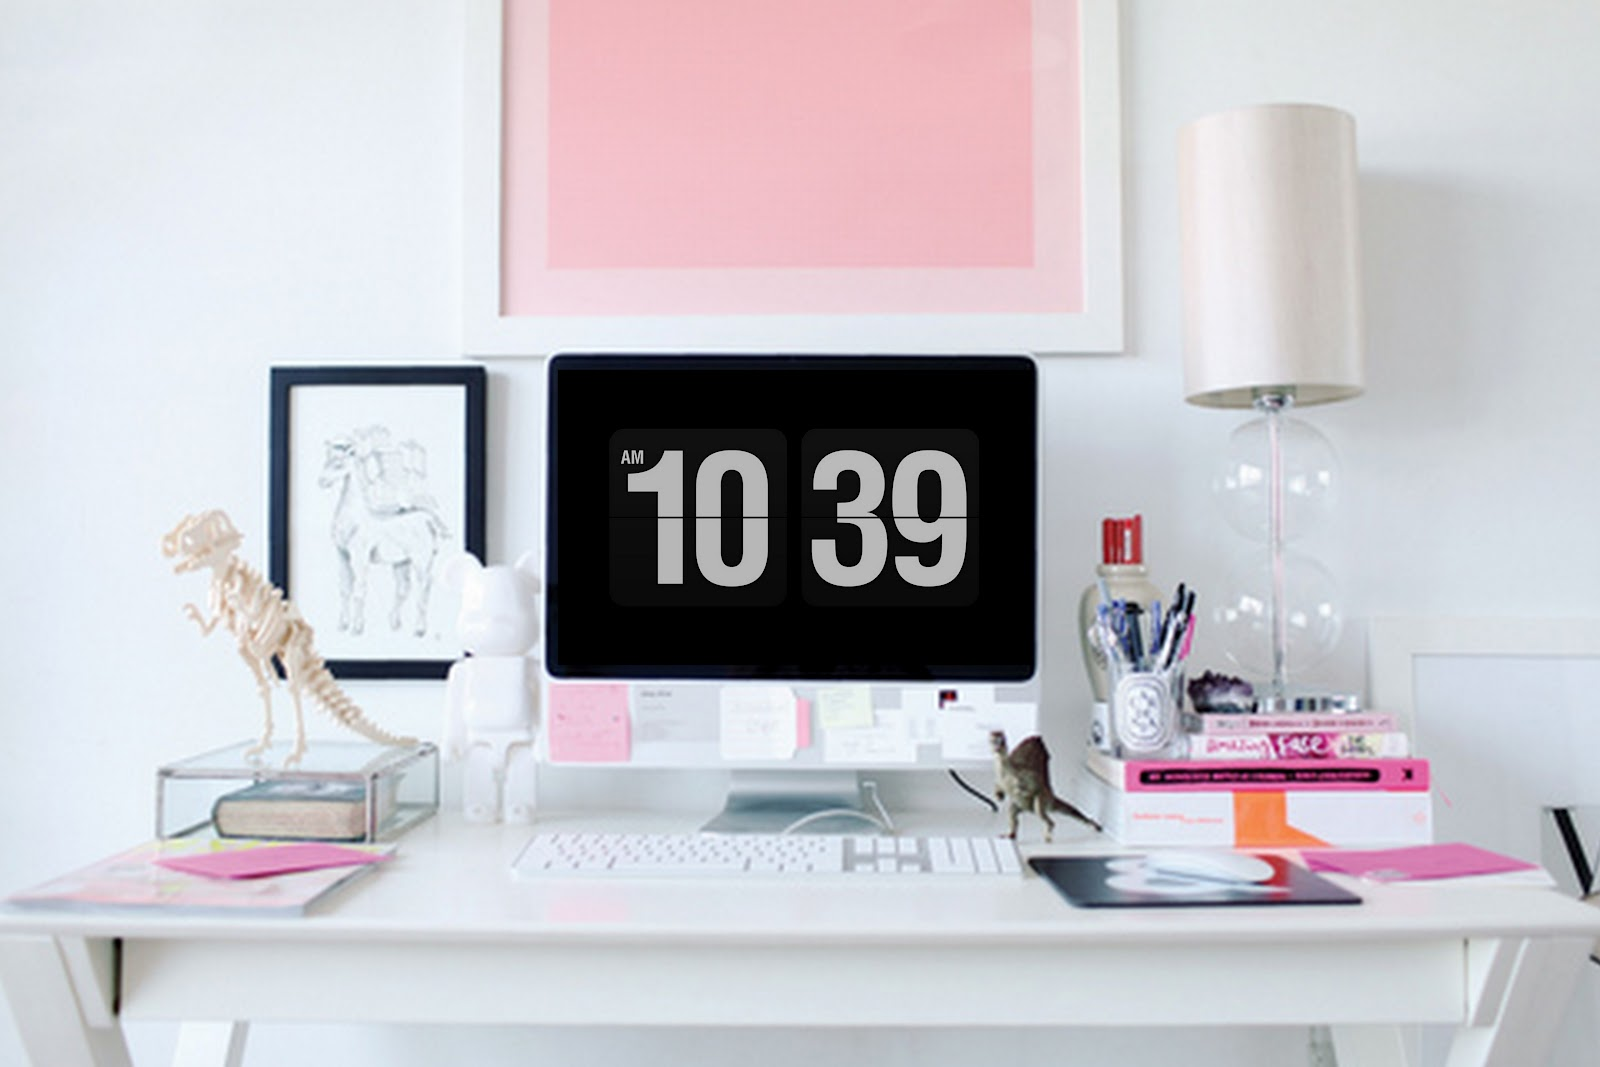 I've had a few readers ask me how to create this Digital Black and White Flip Clock Screensaver Background for the computer, it's really cool isn't it mimicking the appearance of the old retro flip clocks. I use it as my screen saver, it switches on after 5 minutes. People laugh as on my big iMac it's rather large, but it's a fabulous retro look.